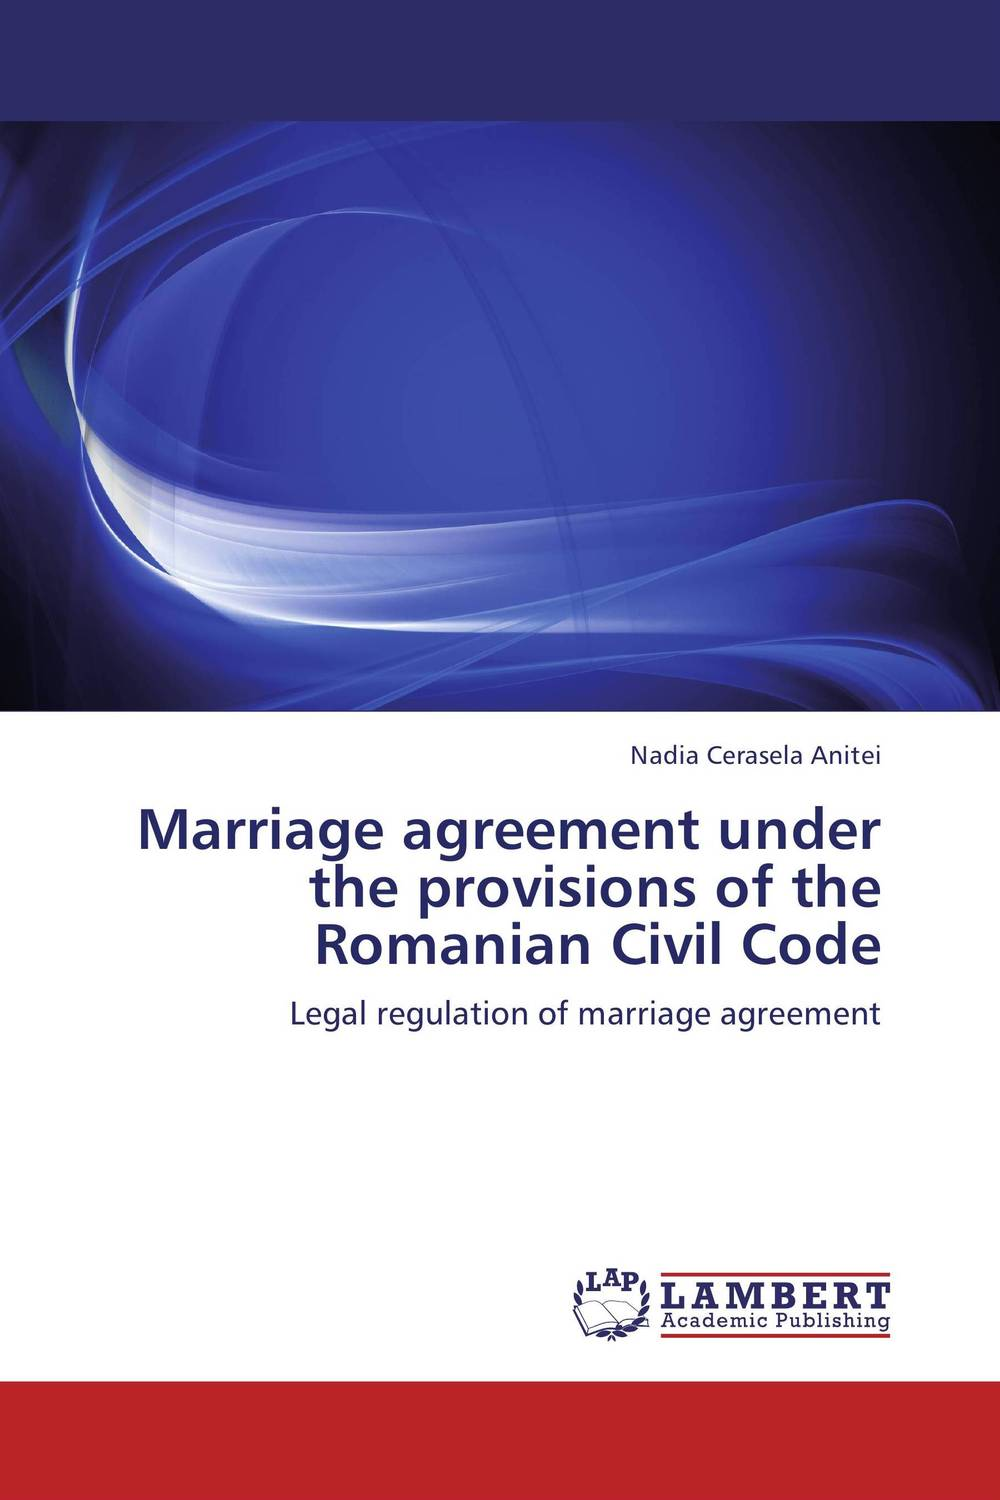 Marriage agreement under the provisions of the Romanian Civil Code tobias h keller telecommunications law under the light of convergence